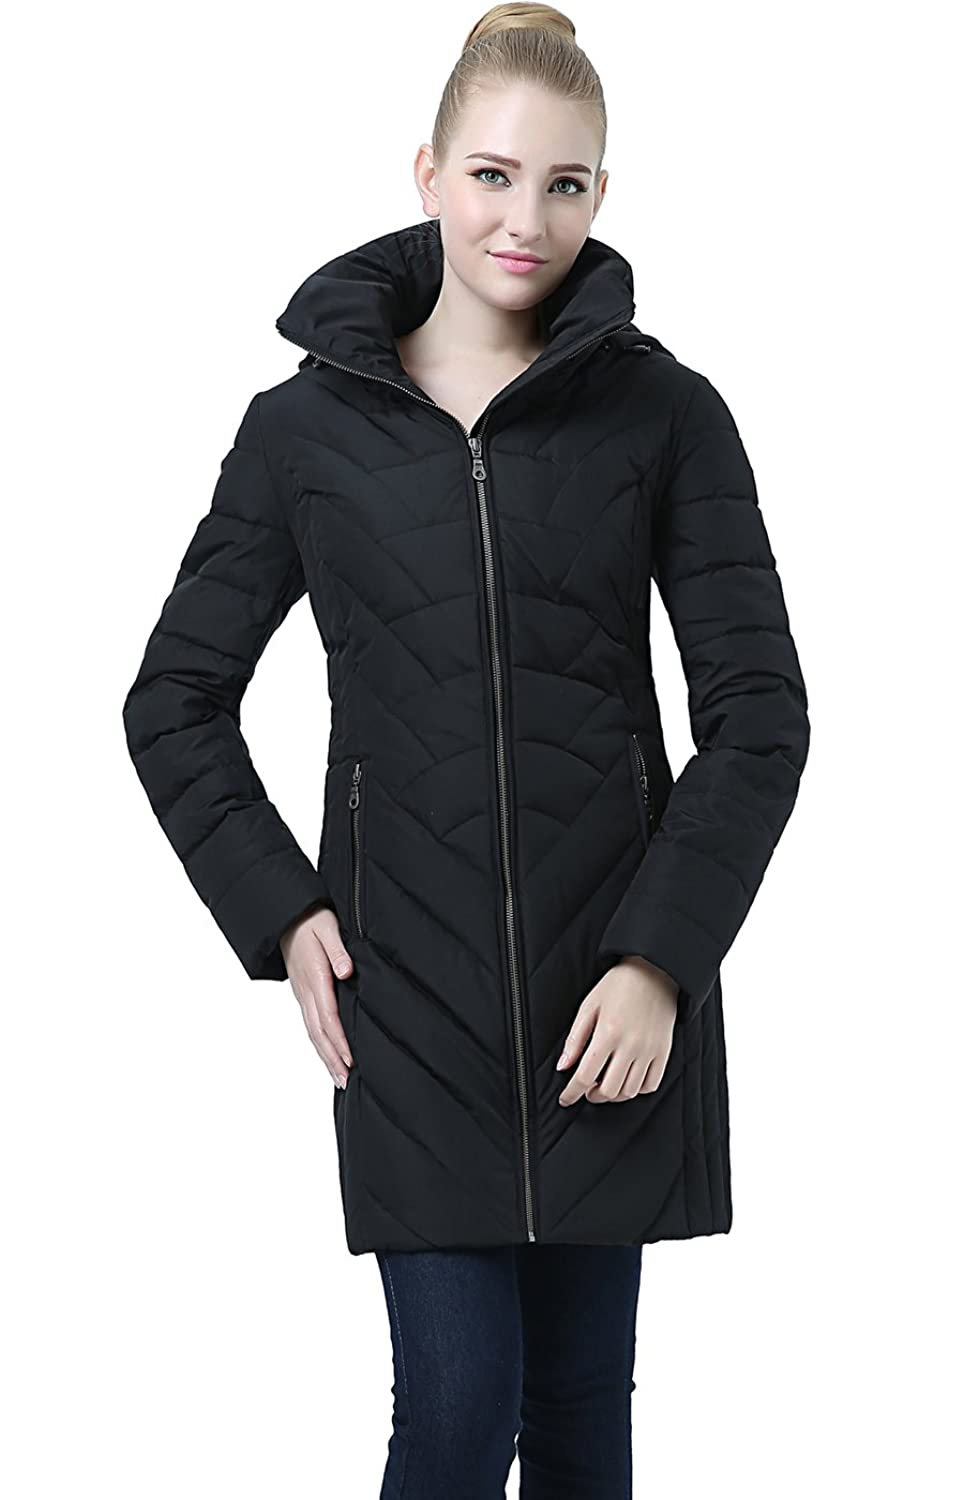 Amazon.com: Arctix Women's Peacock Long Coat: Sports & Outdoors